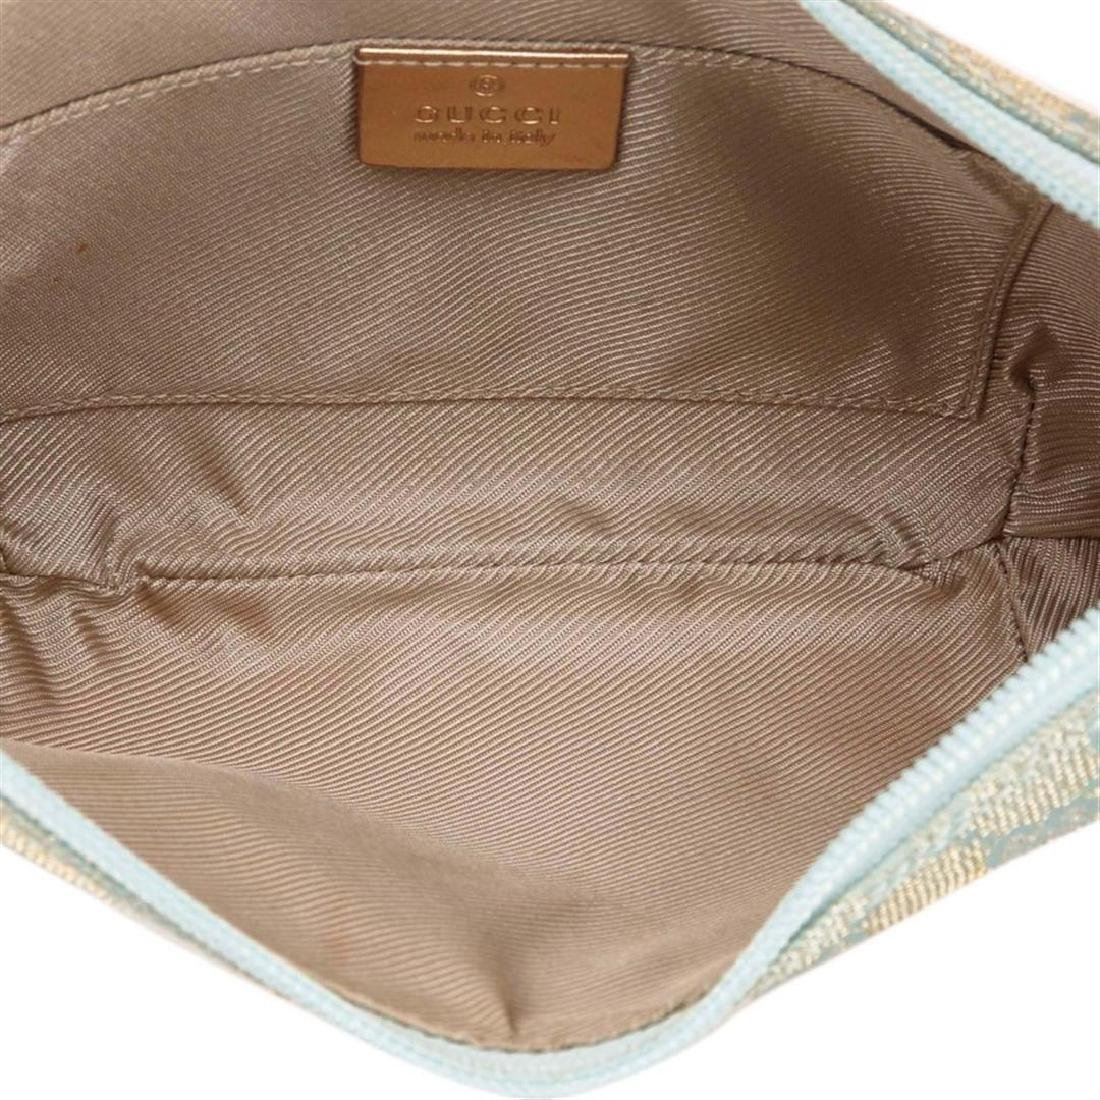 Gucci Blue Green Canvas Brown Leather Jacquard Shoulder - 6